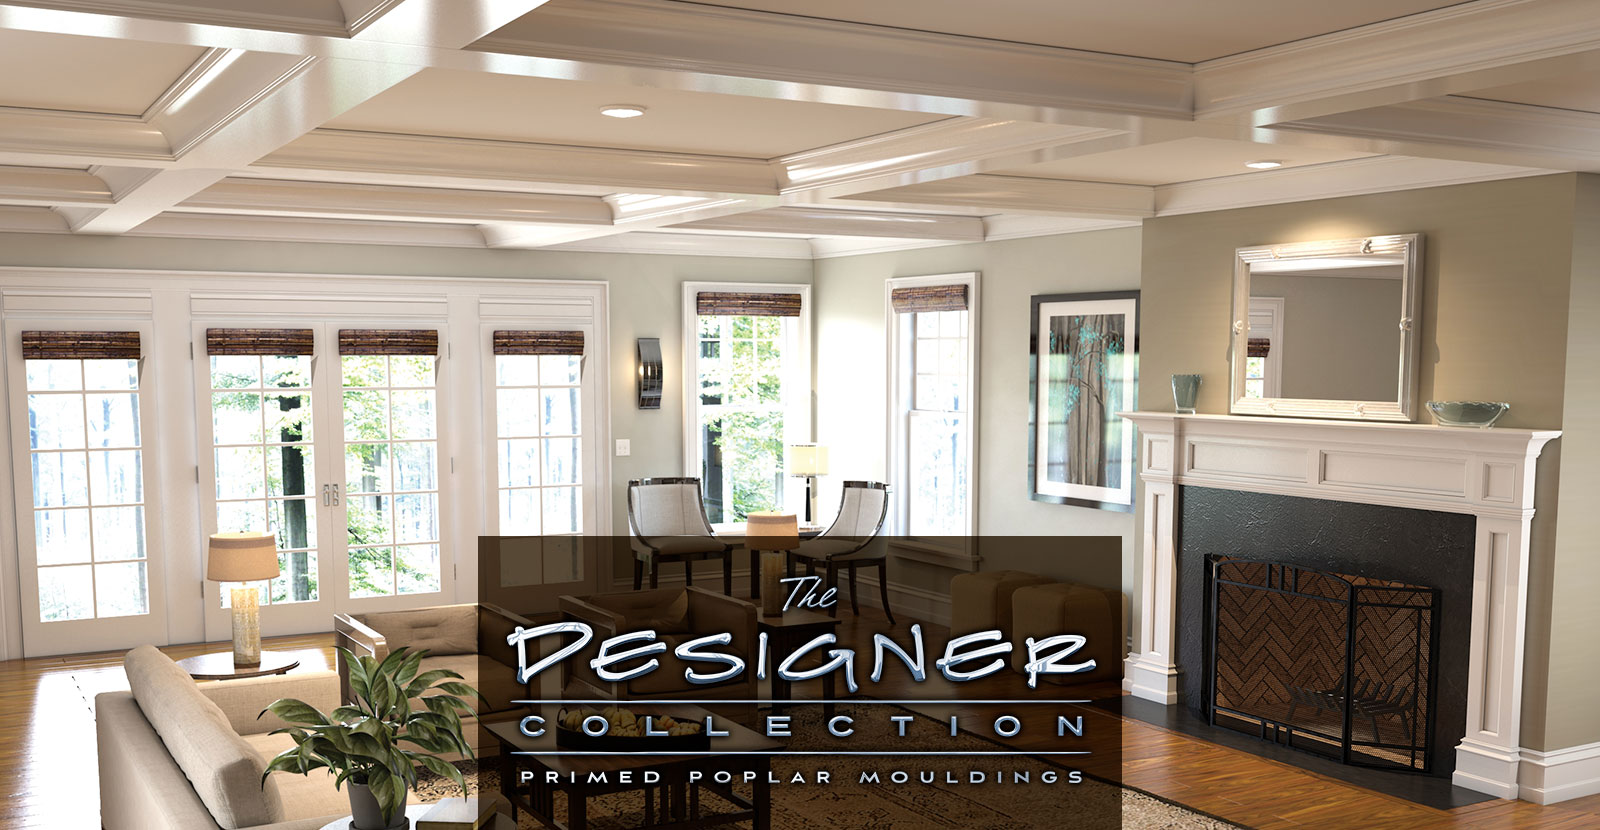 The Designer Collection